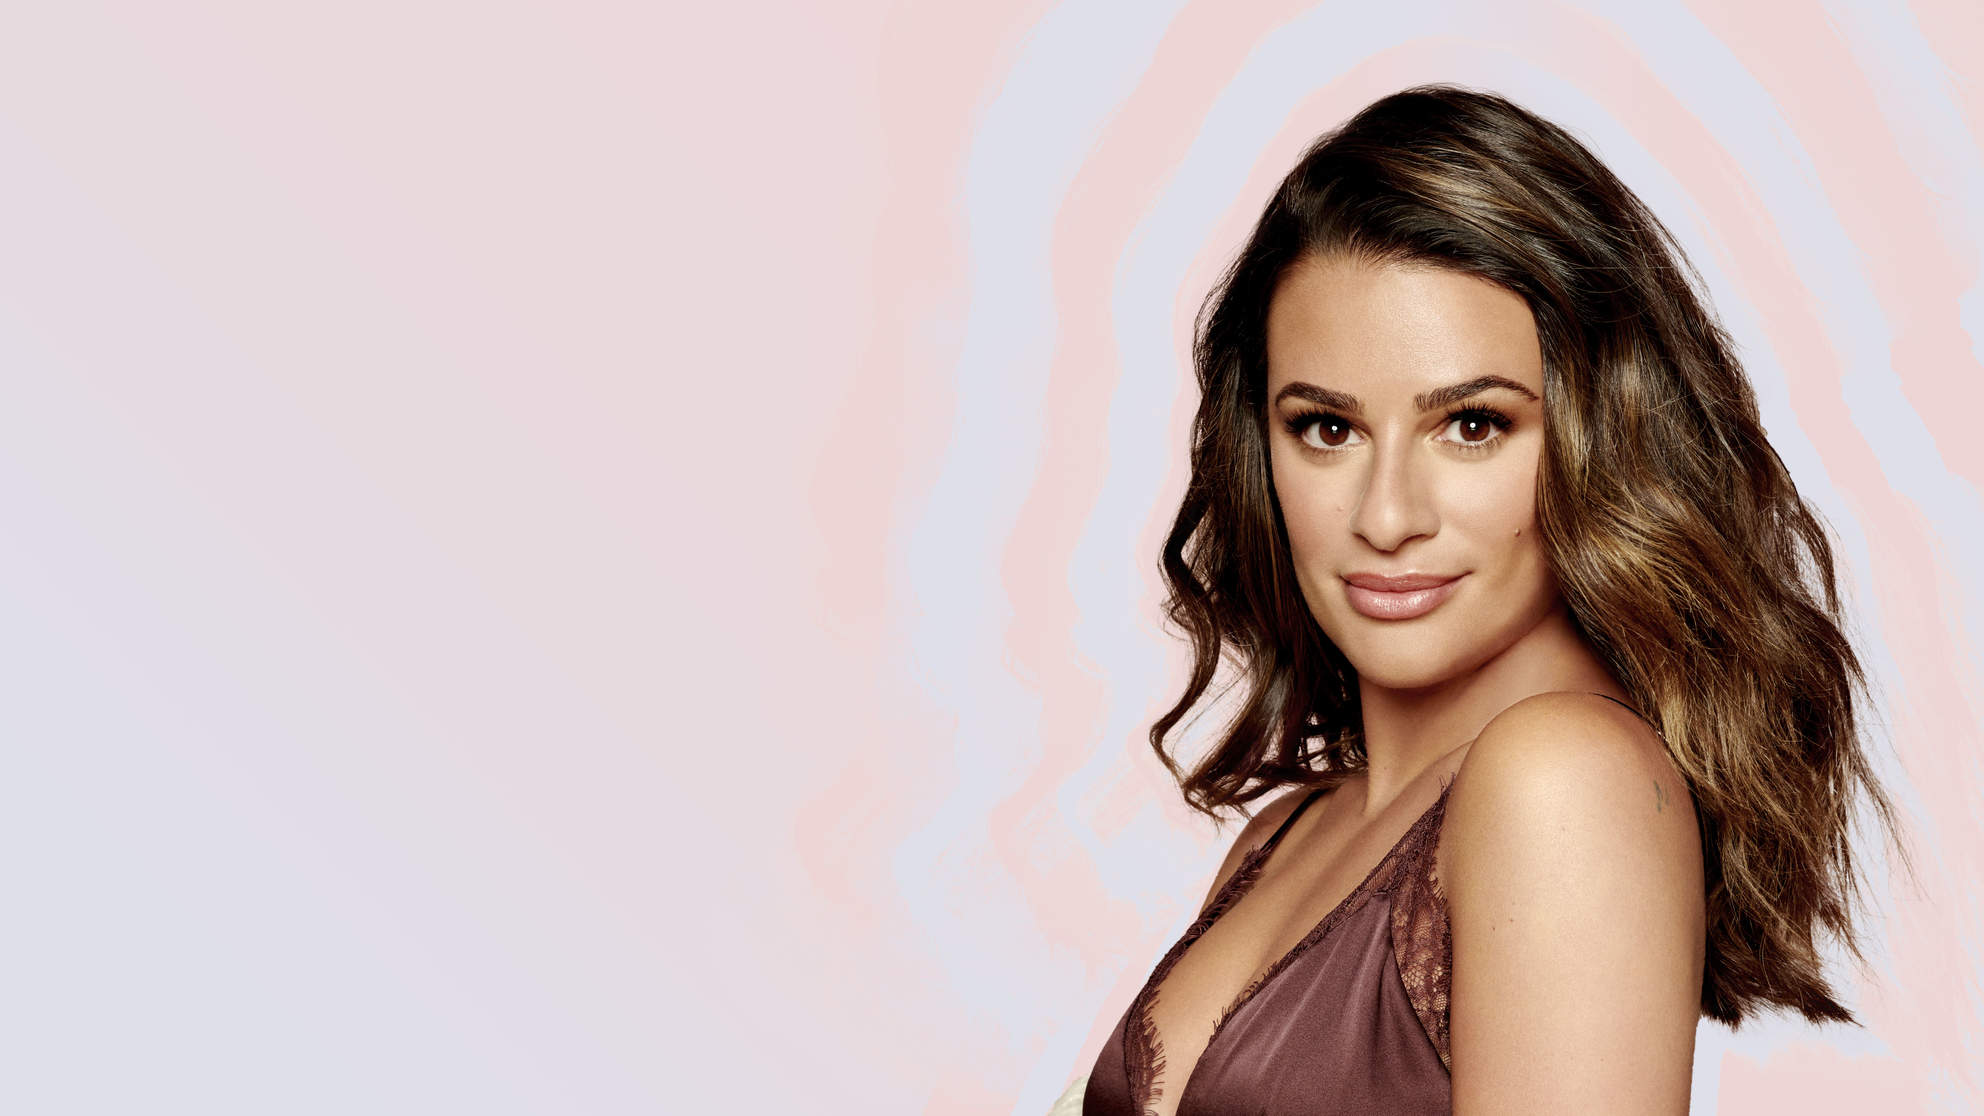 Lea Michele On How PCOS Changed Her Relationship With Food: 'The Side Effects Can Be Brutal'